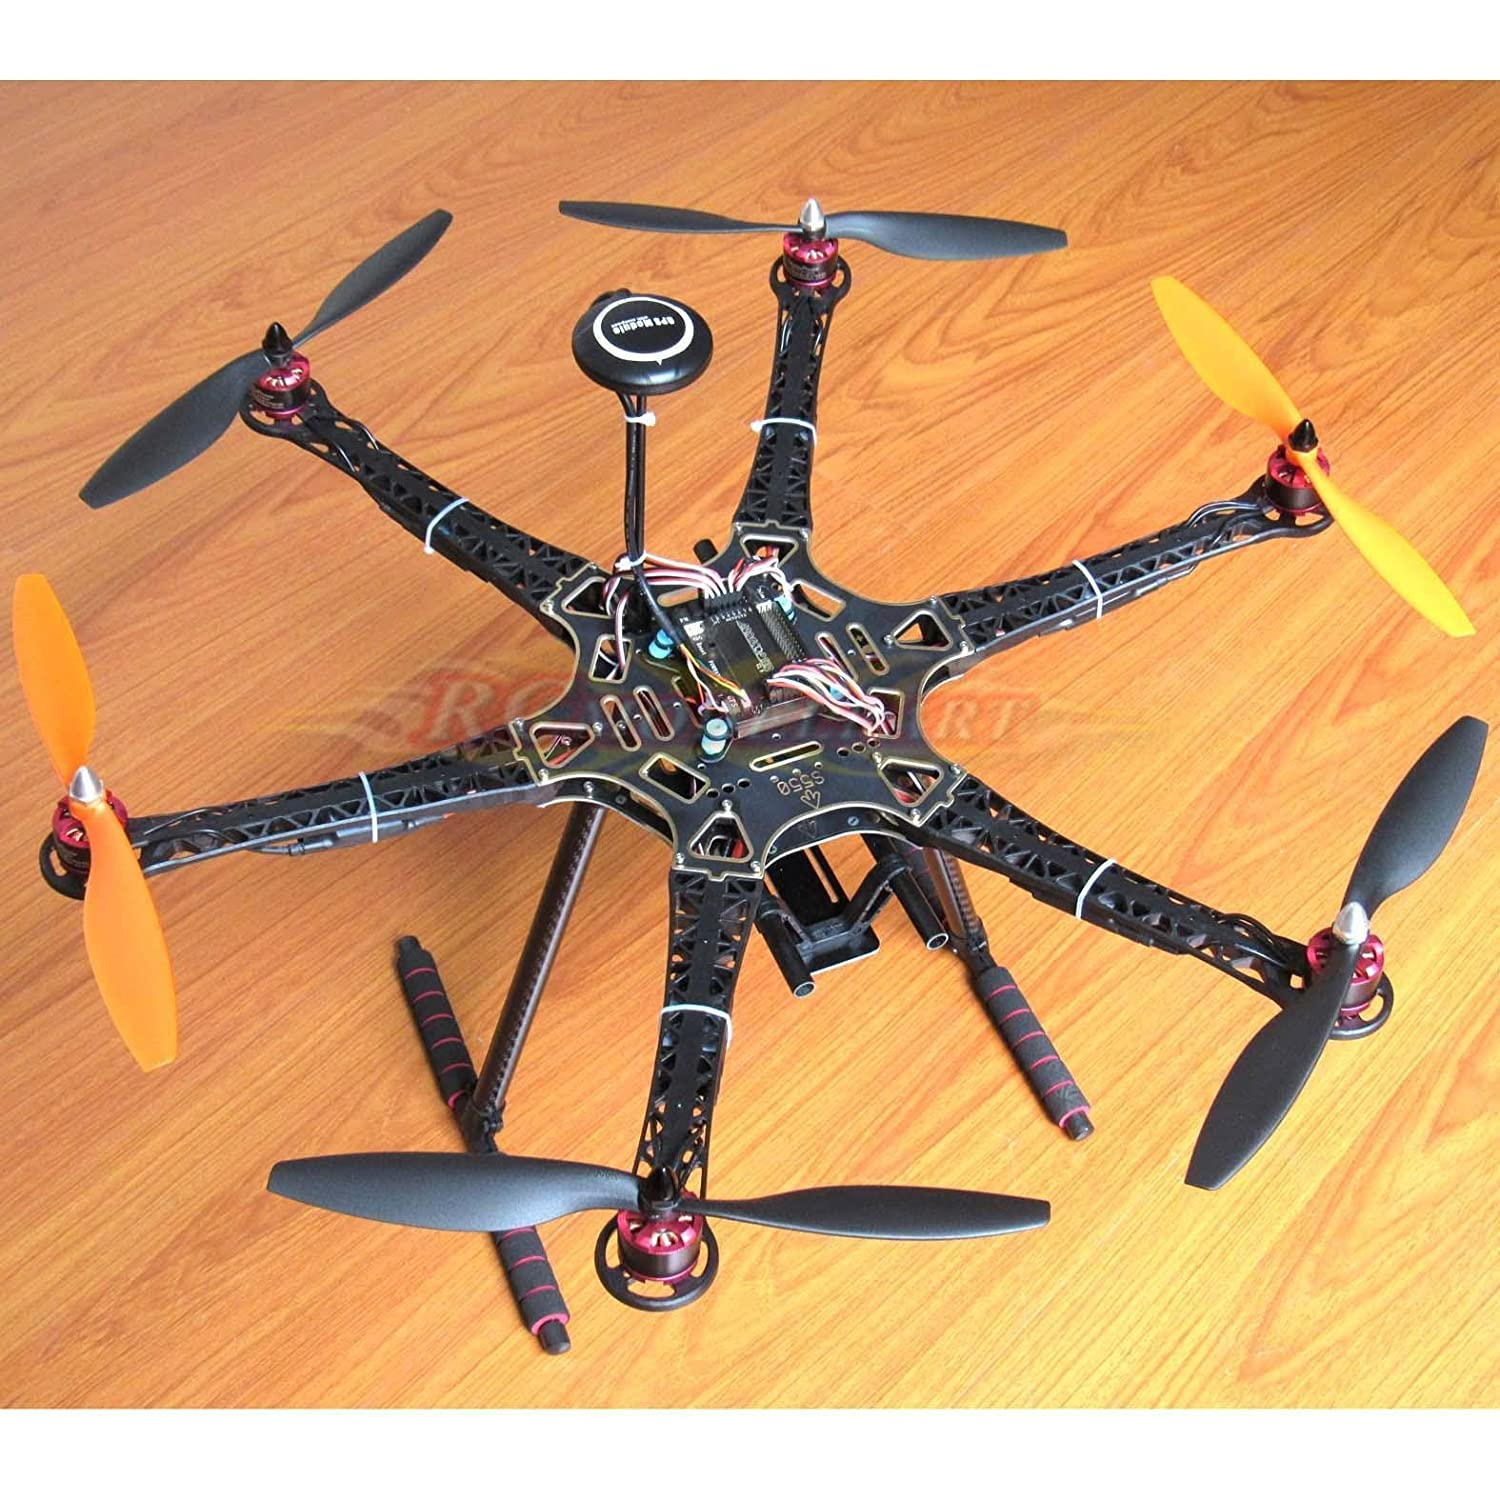 Hobbypower DIY S550 Hexacopter Frame with Flight Controller